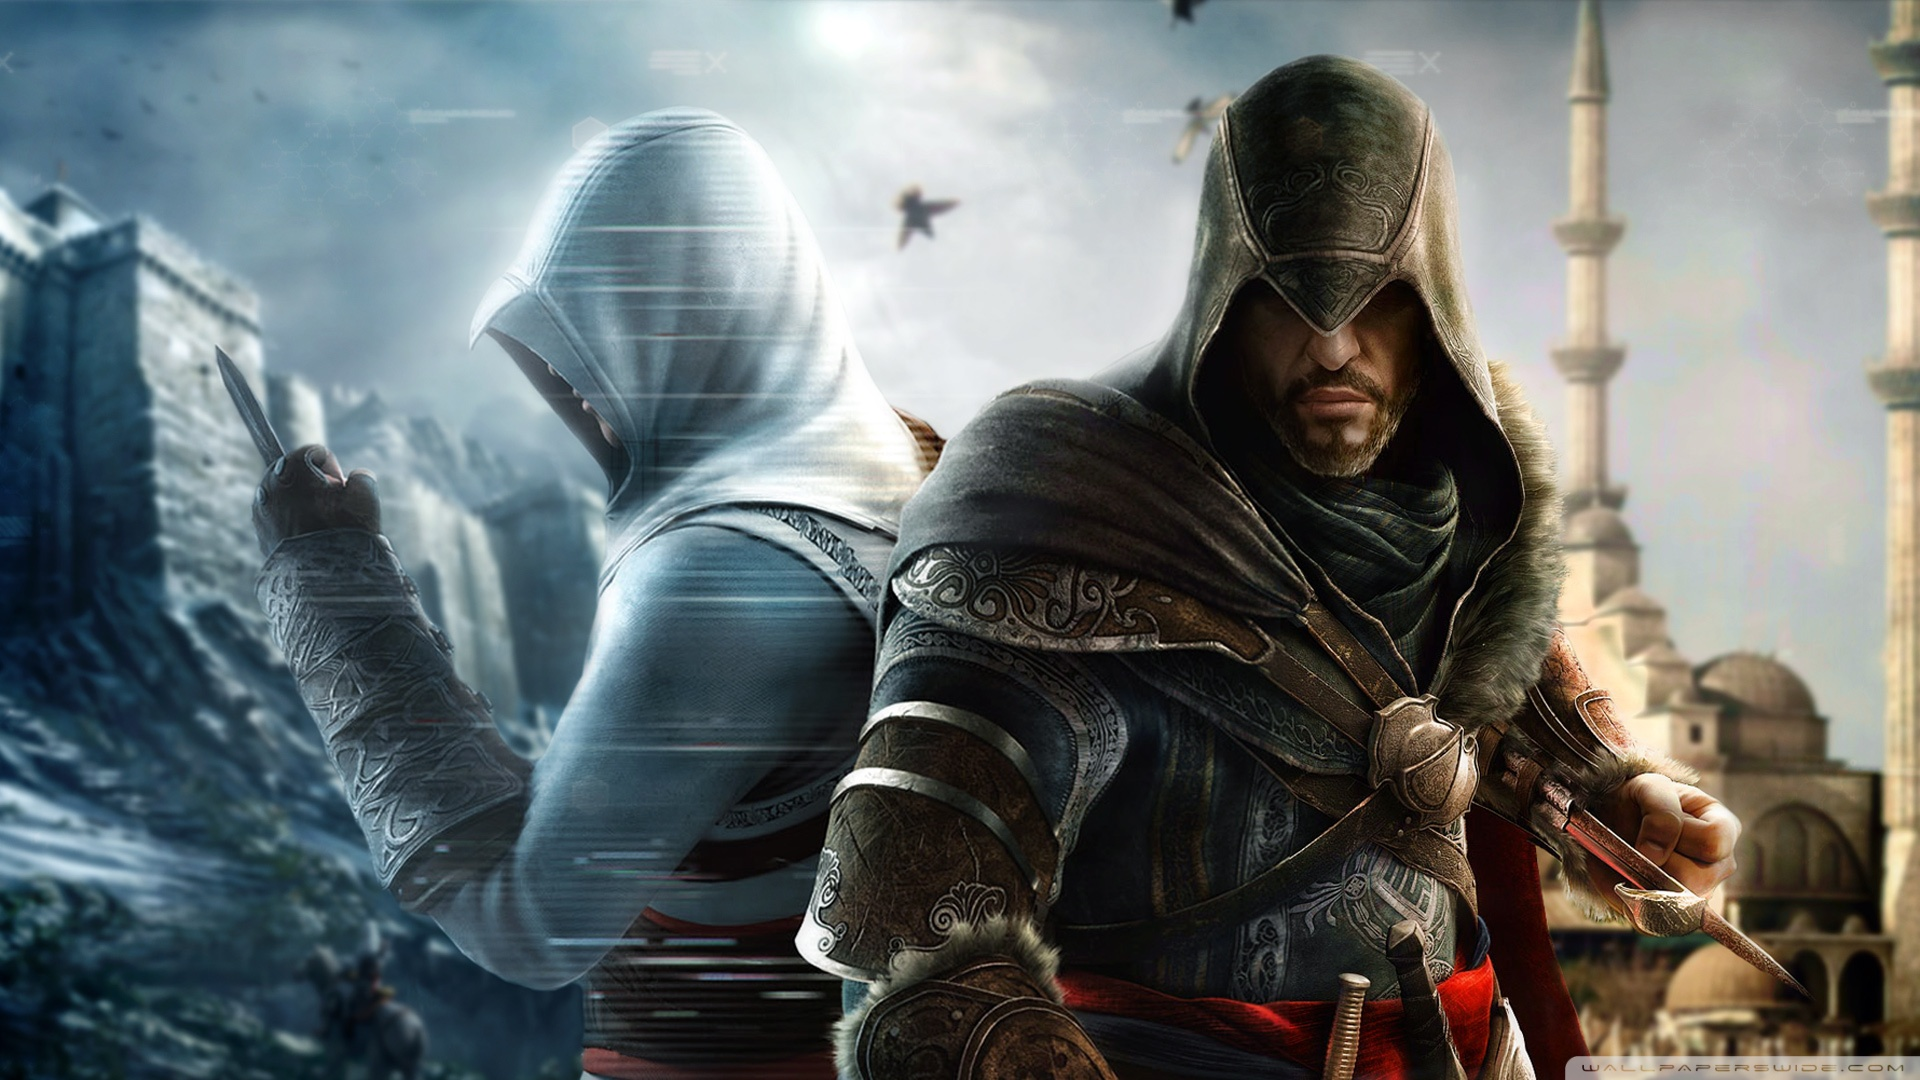 Assassins-Creed-Revelation-wallpaper-wp3402636